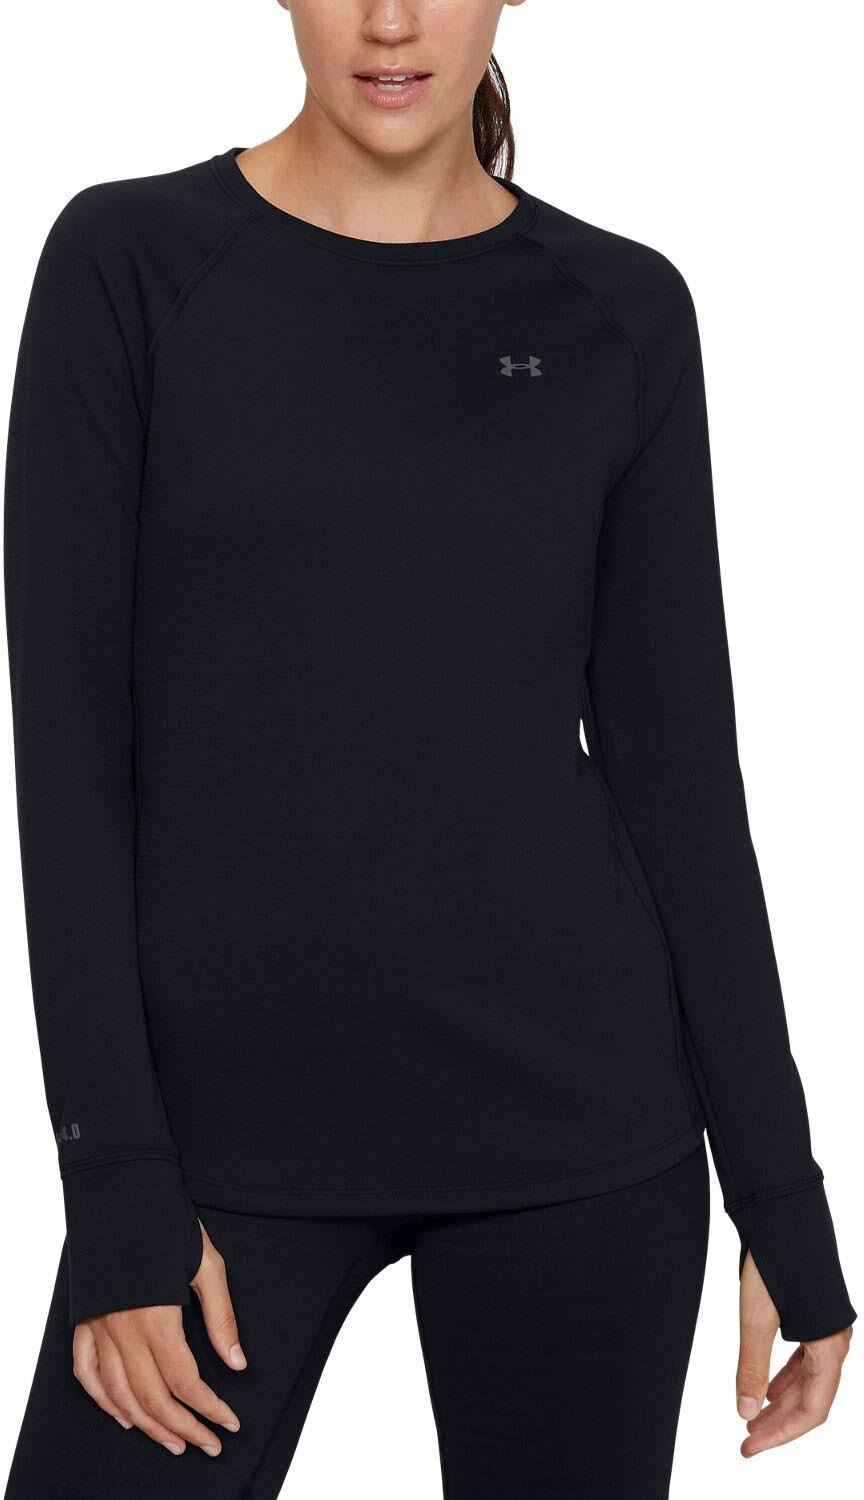 Under Armour Base 4.0 Crew - Women's Black, XL